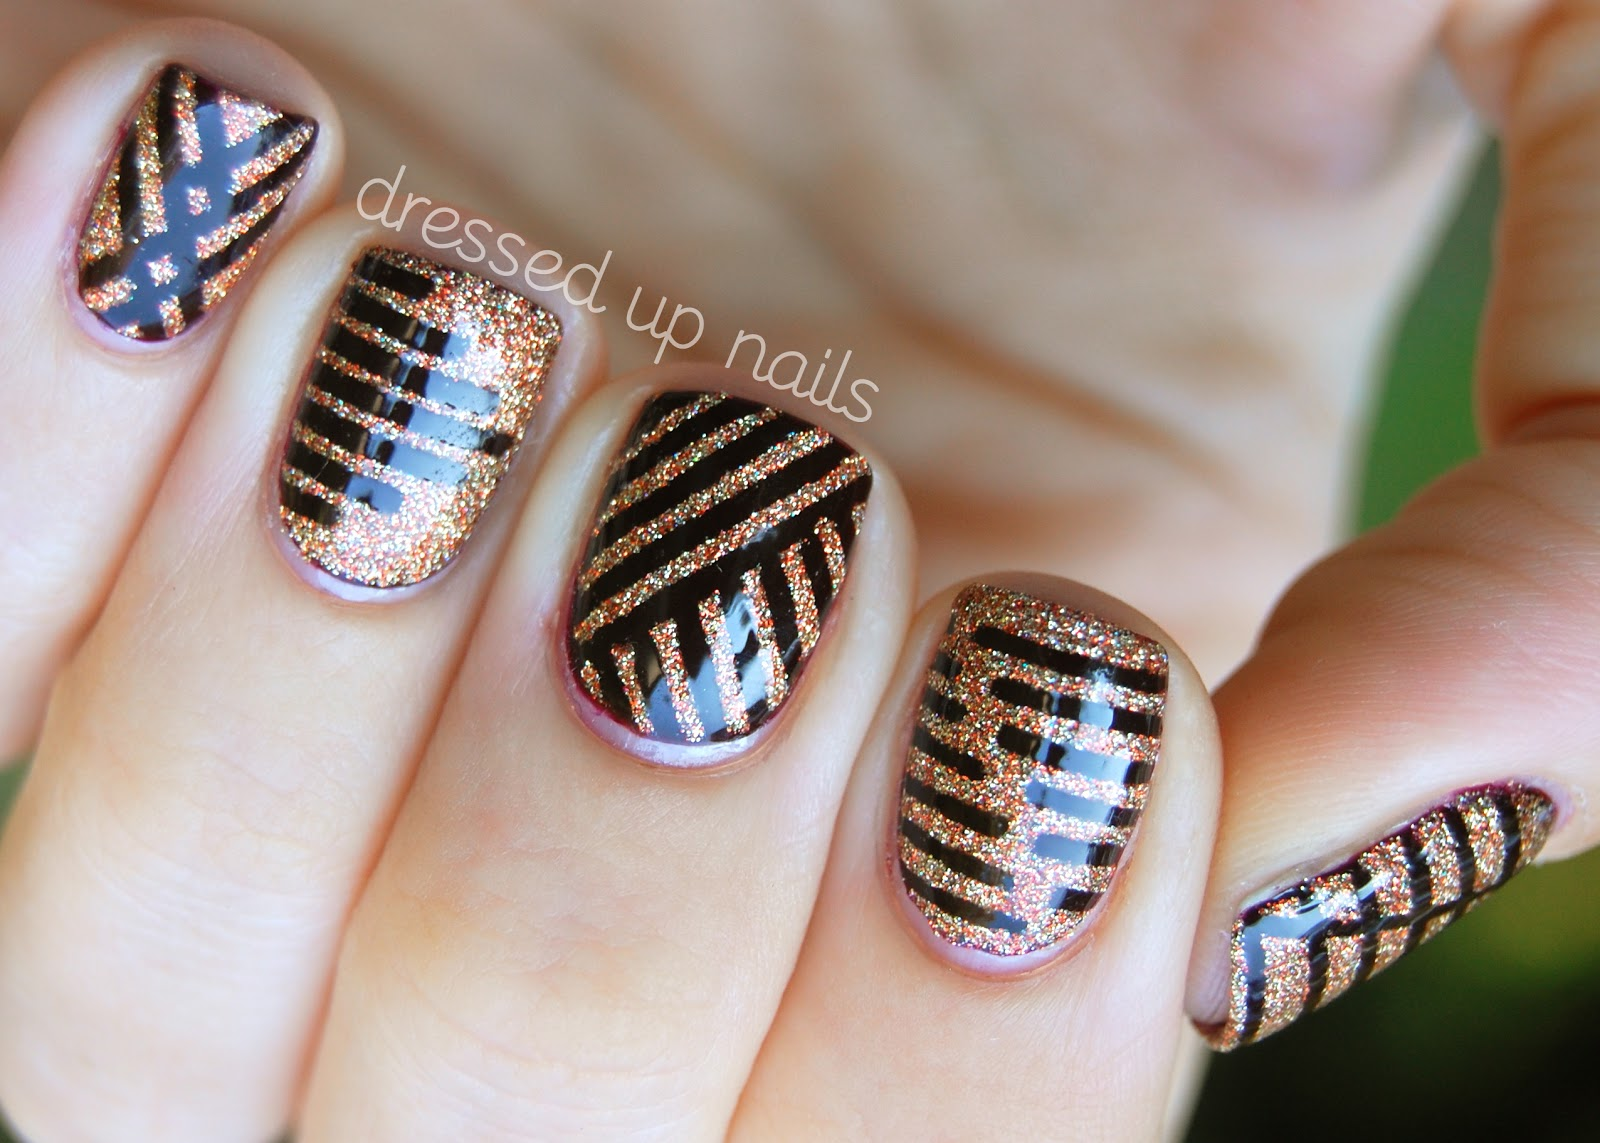 Striped Nails Tag Fashion Diva Design